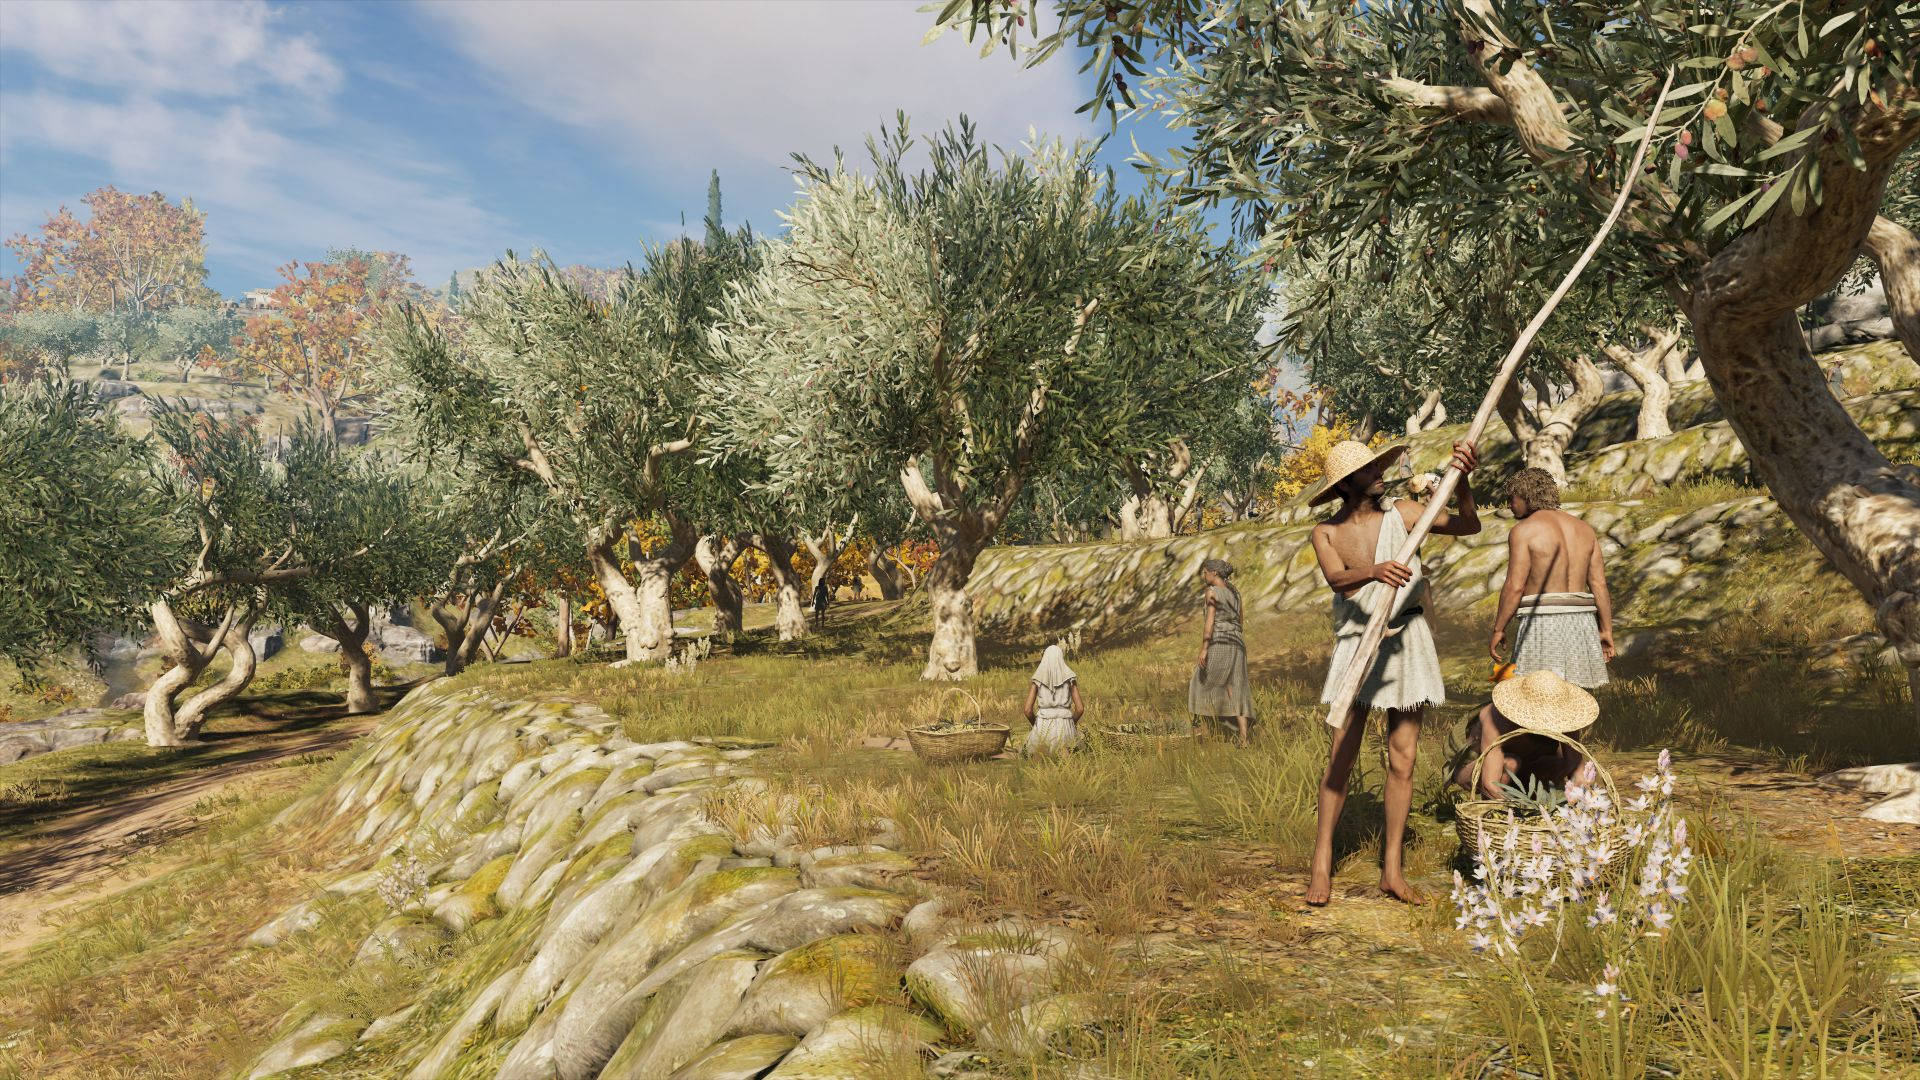 NPCs in Assassin's Creed Odyssey are harvesting olives from trees on a sunny hillside